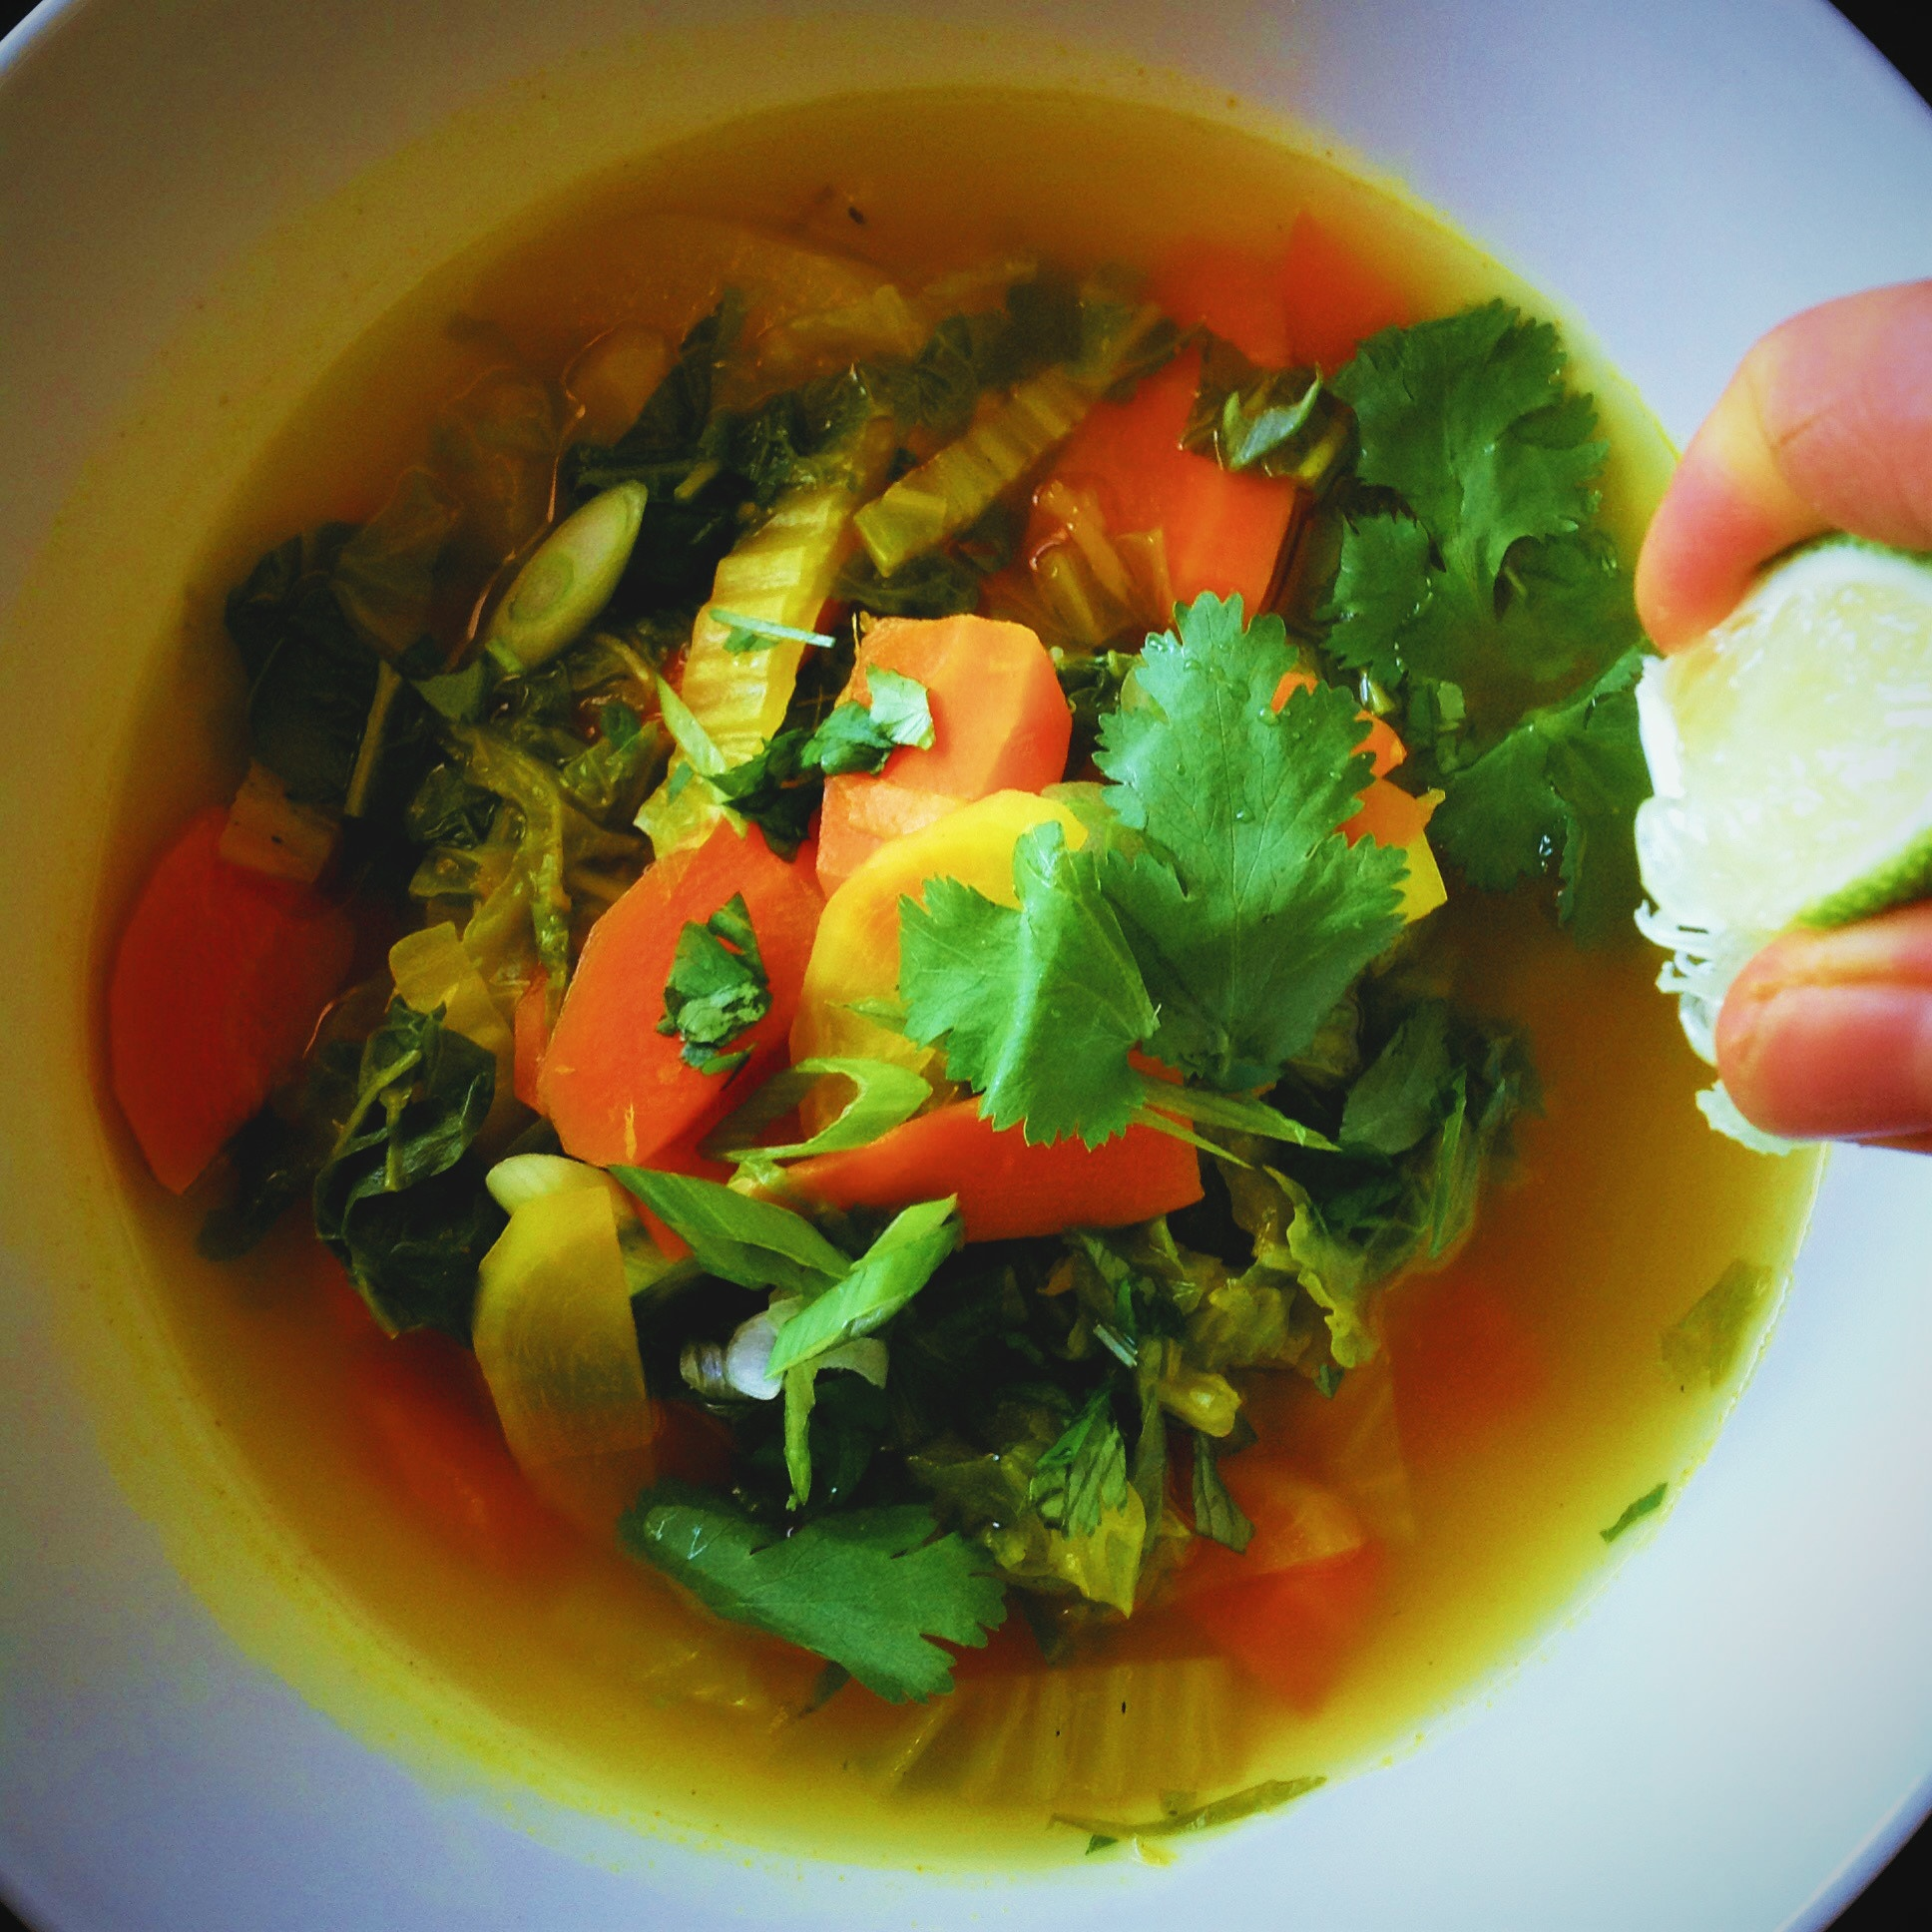 Detox Napa Cabbage Soup With Ginger Turmeric And Lime Plants Rule